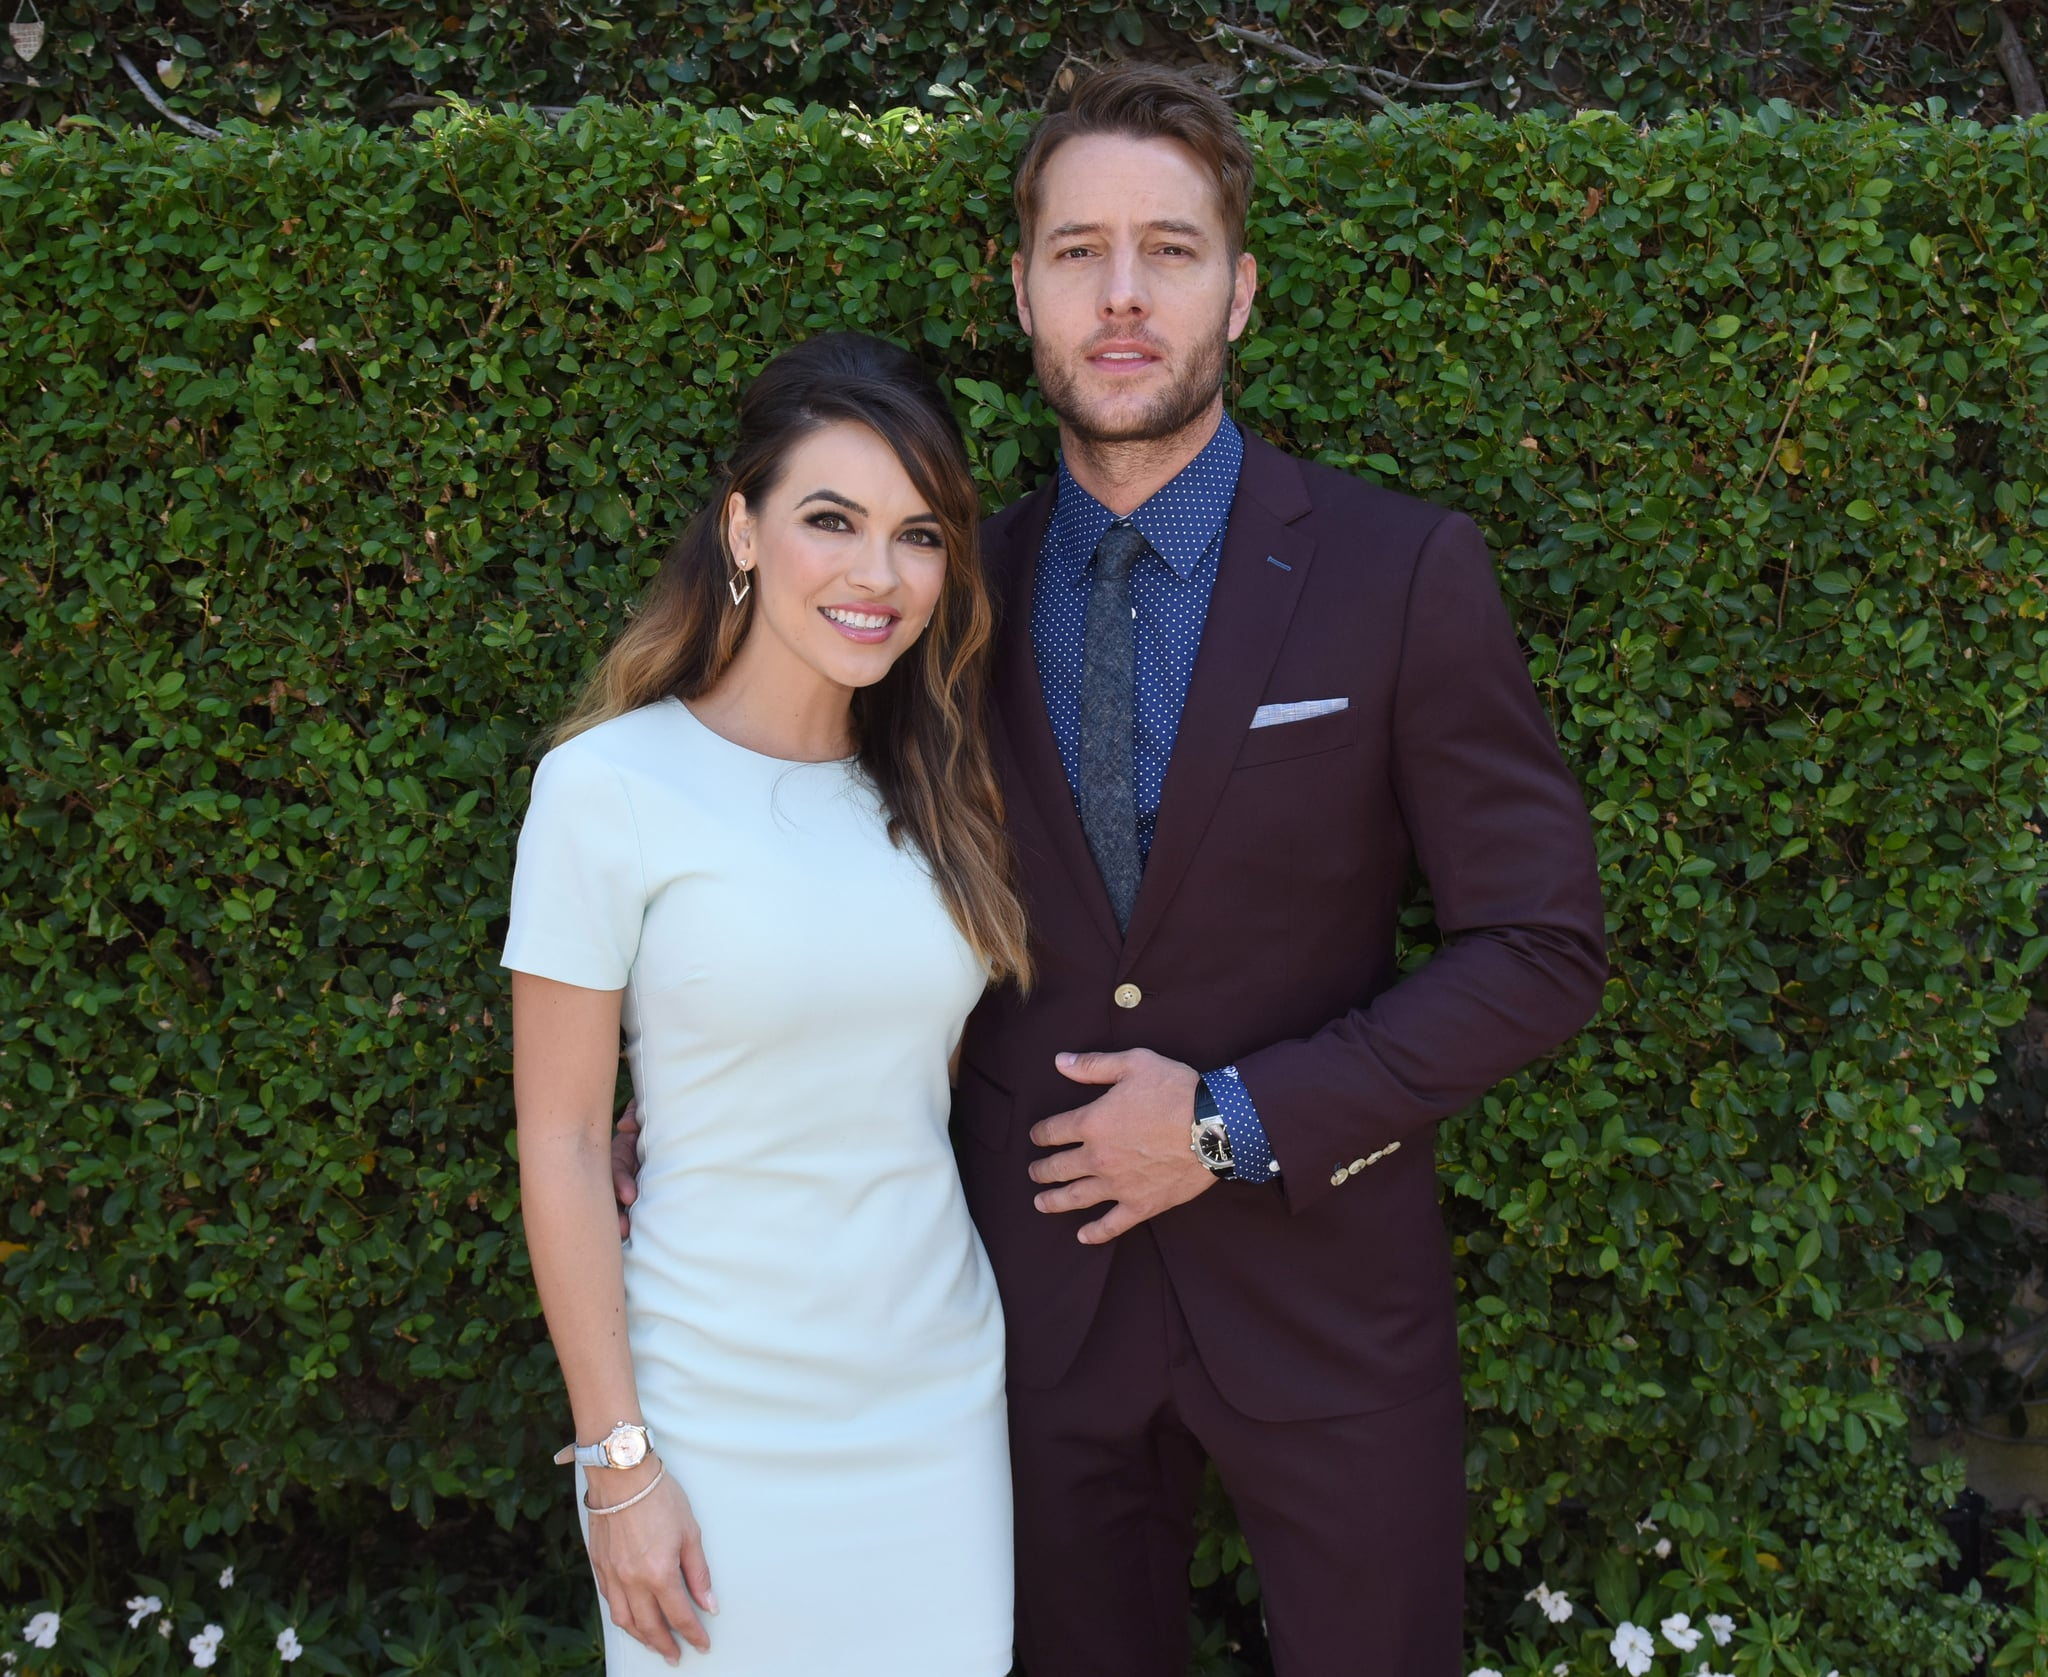 This Is Us Star Justin Hartley and Chrishell Stause Are Married